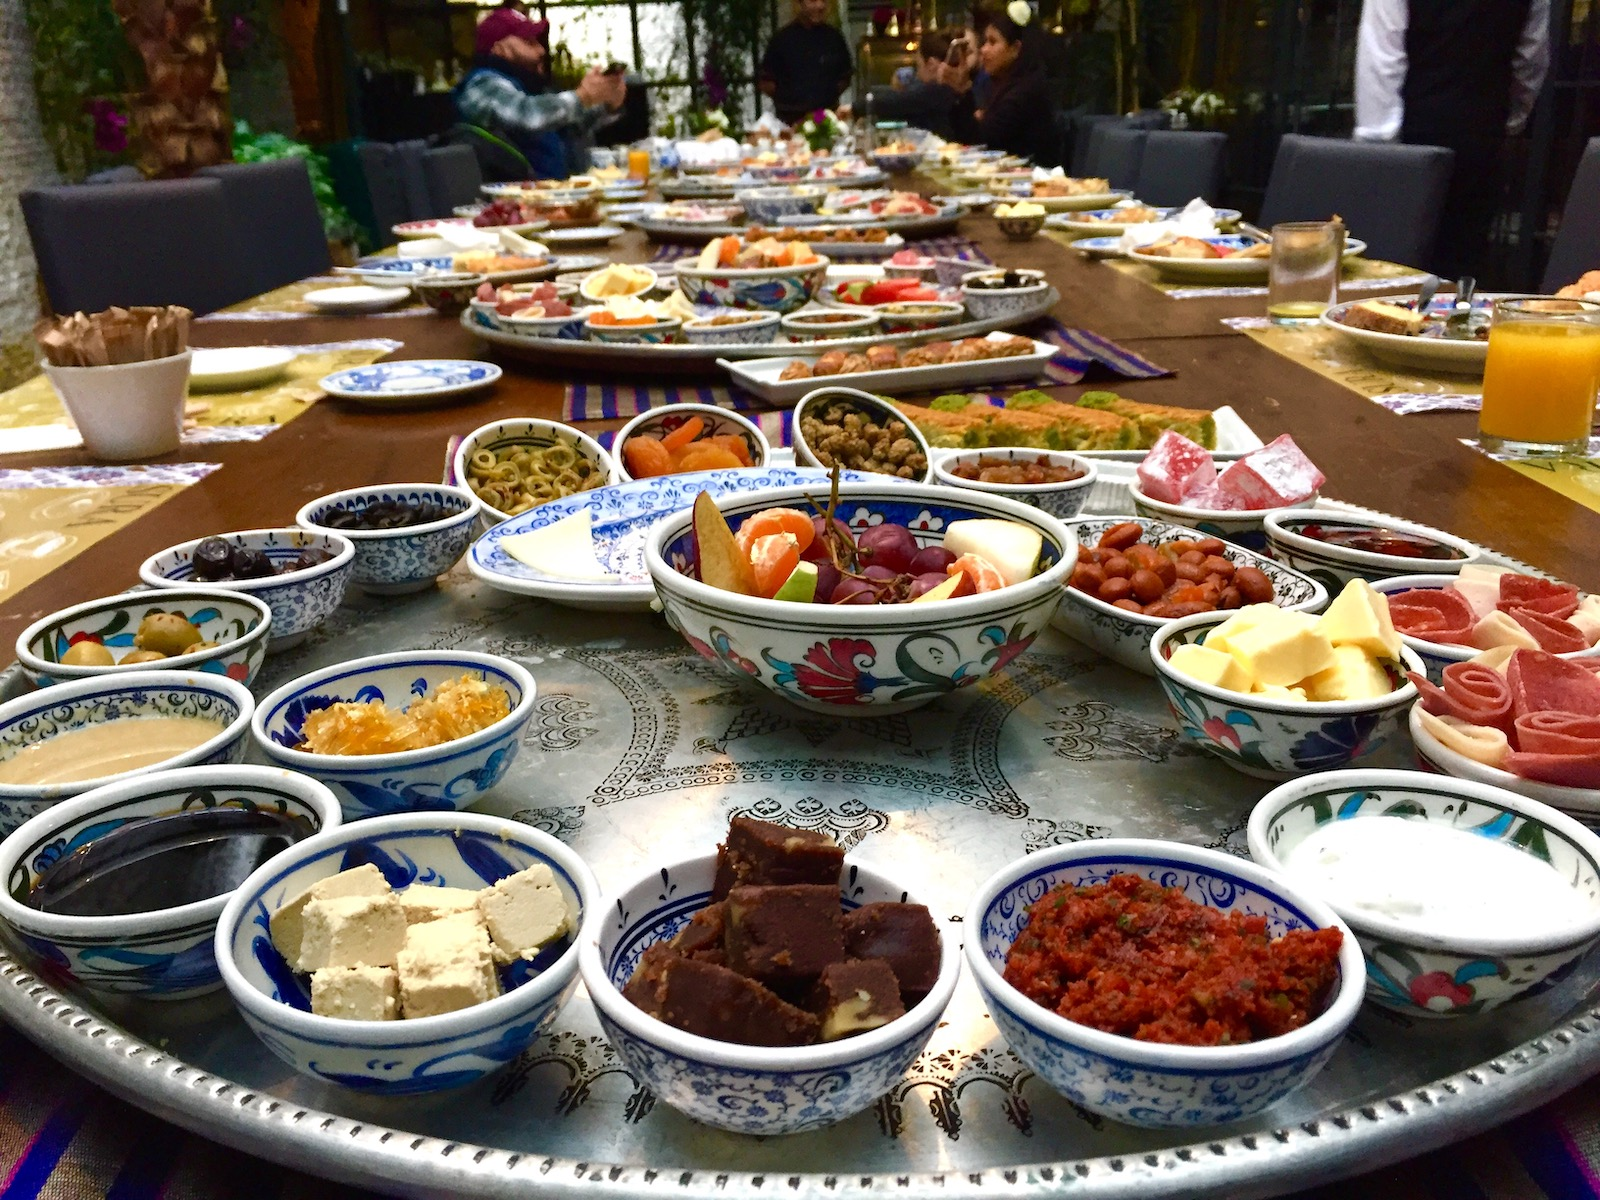 Turkish Breakfast - Top 11 Things to Do In Istanbul